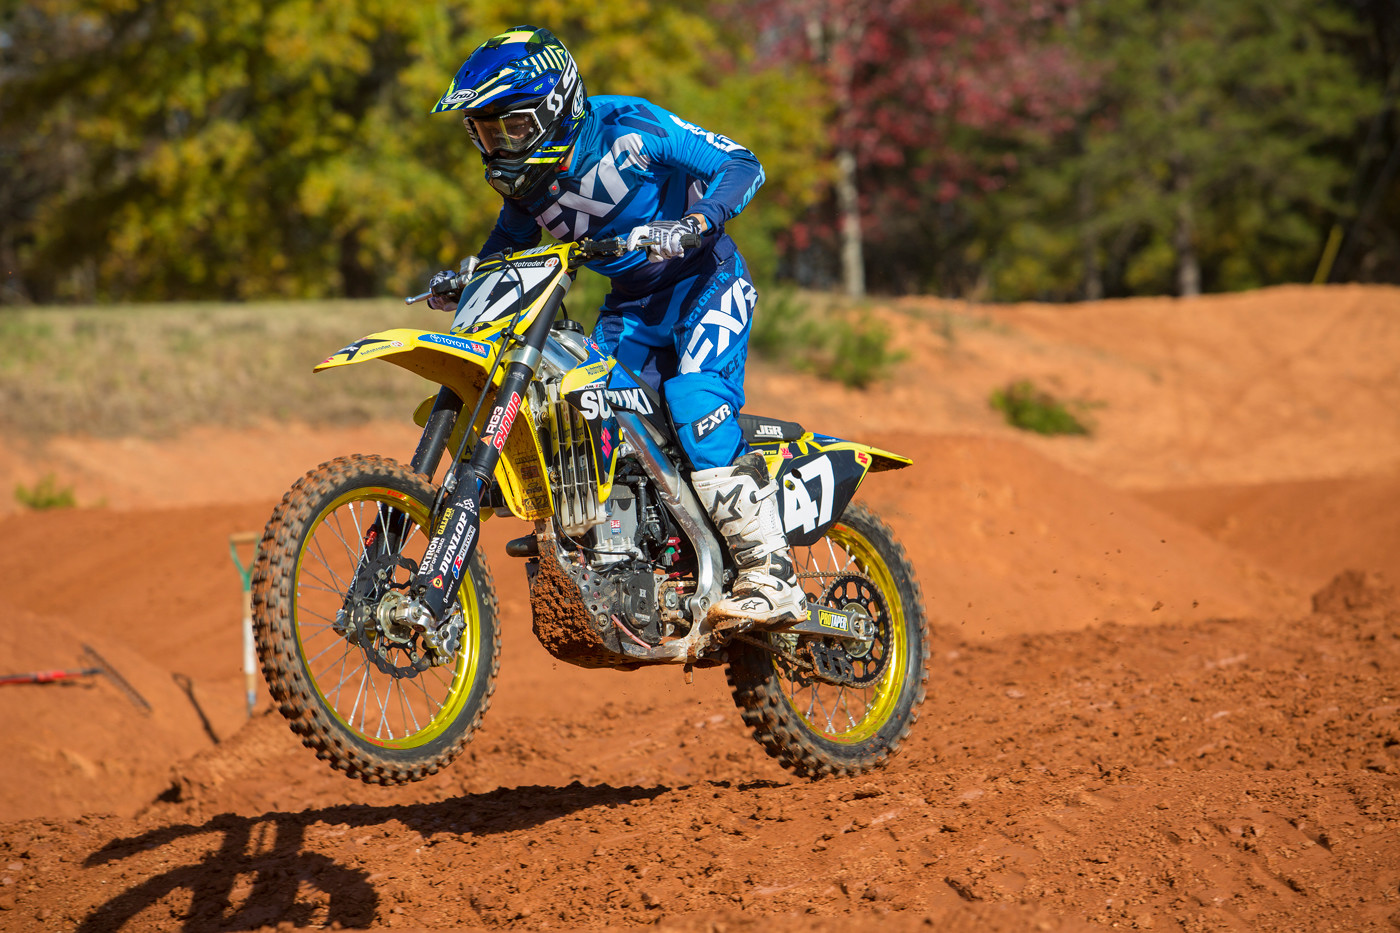 Jimmy Decotis Signs Deal with FXR Racing